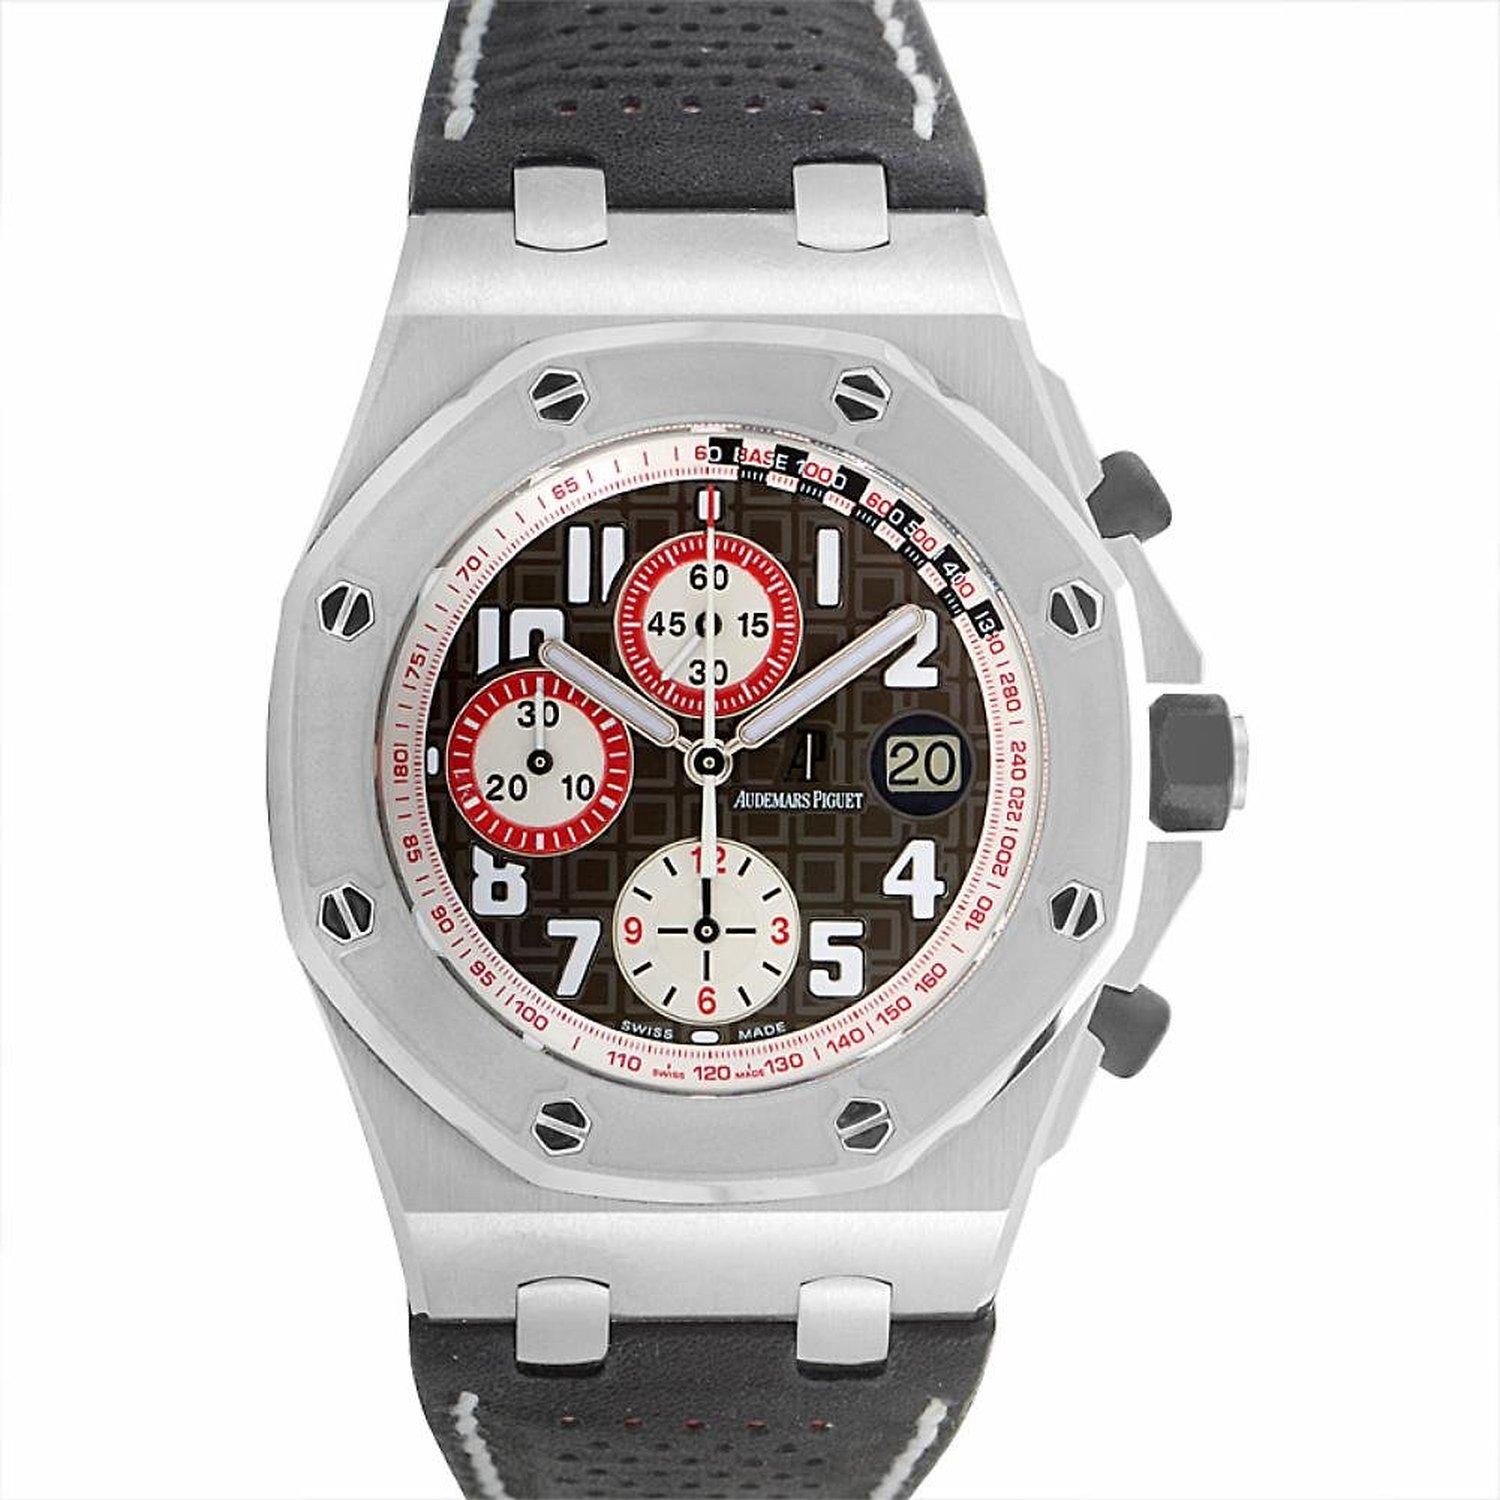 Audemars Piguet Royal Oak Offshore Amazon